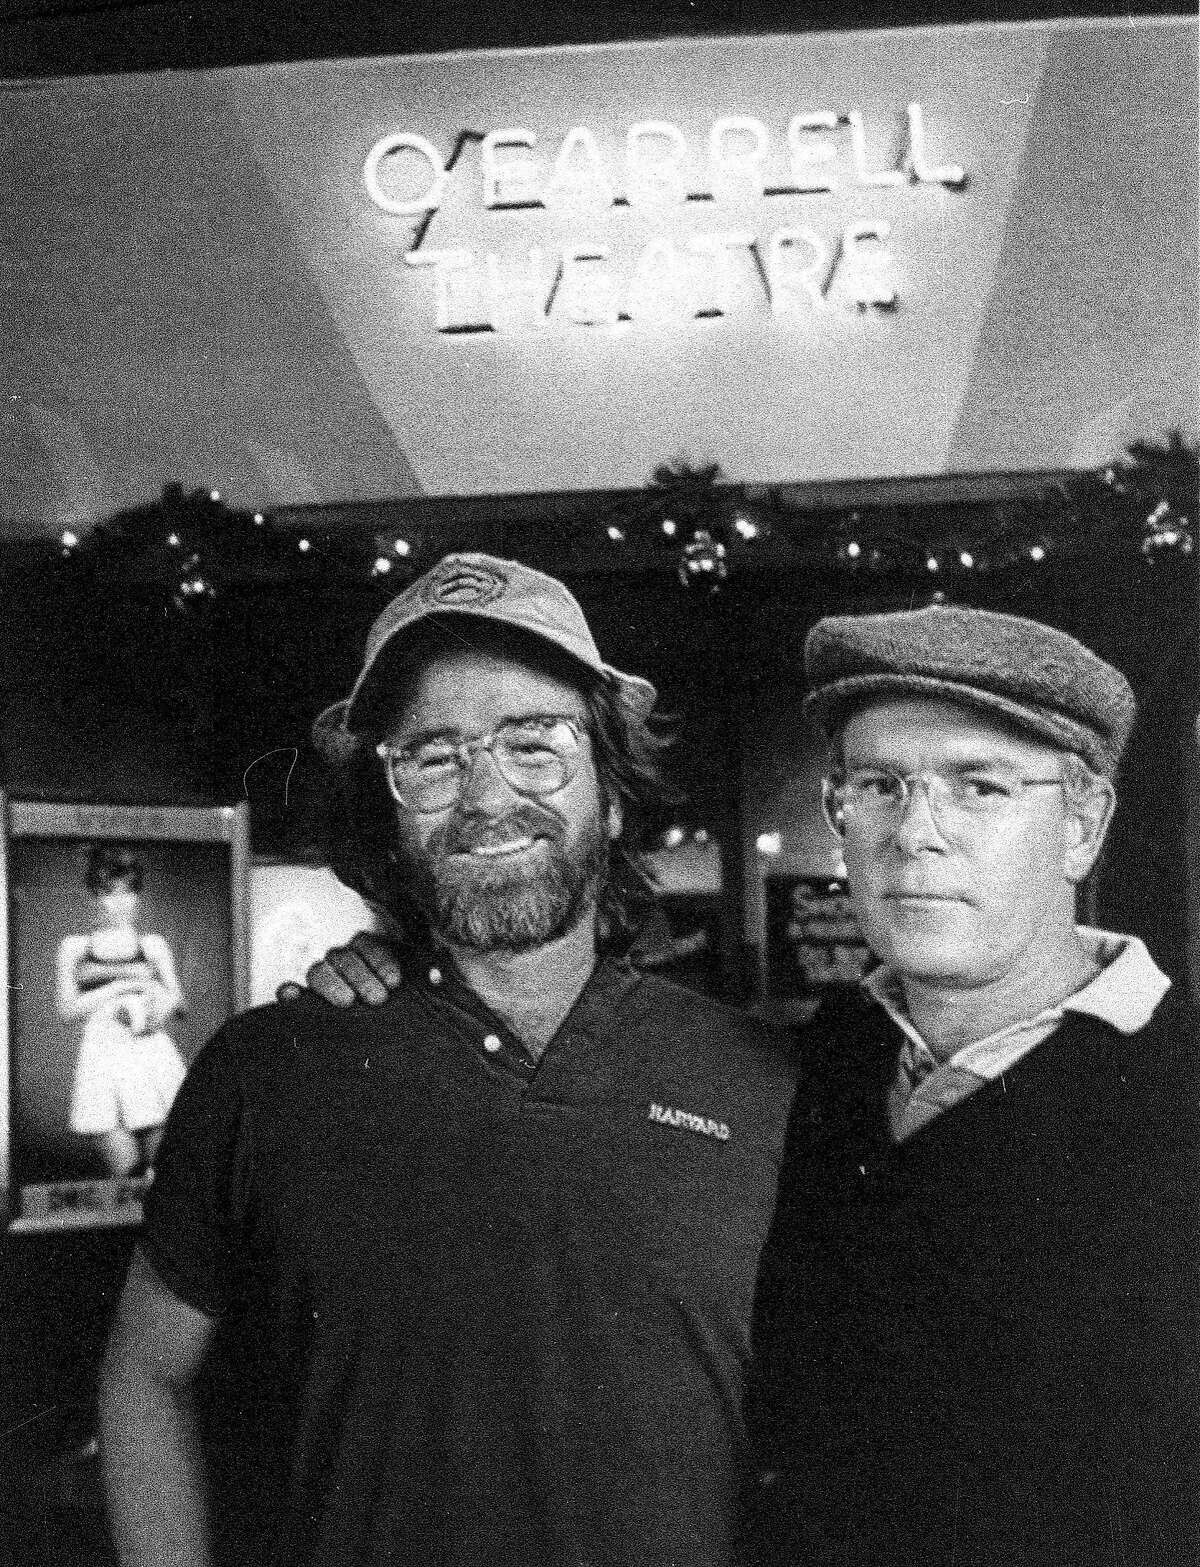 **FILE** Artie Mitchell, left, and his brother Jim Mitchell pose for a photograph in this file photo taken at the O'Farrell theater in San Francisco, Dec. 1989. Jim Mitchell, the pioneering pornographer who was convicted of killing his brother Artie with whom he built the Mitchell Brothers skin flick empire, died Thursday, July 12, 2007, at age 63, according to the Sonoma County coroner. (AP Photo) Ran on: 07-21-2007 Artie (top left) and Jim Mitchell at the Mitchell Brothers OFarrell Theatre in December 1989. Jim shot Artie to death in 1991, and Jim died of a heart attack last week.